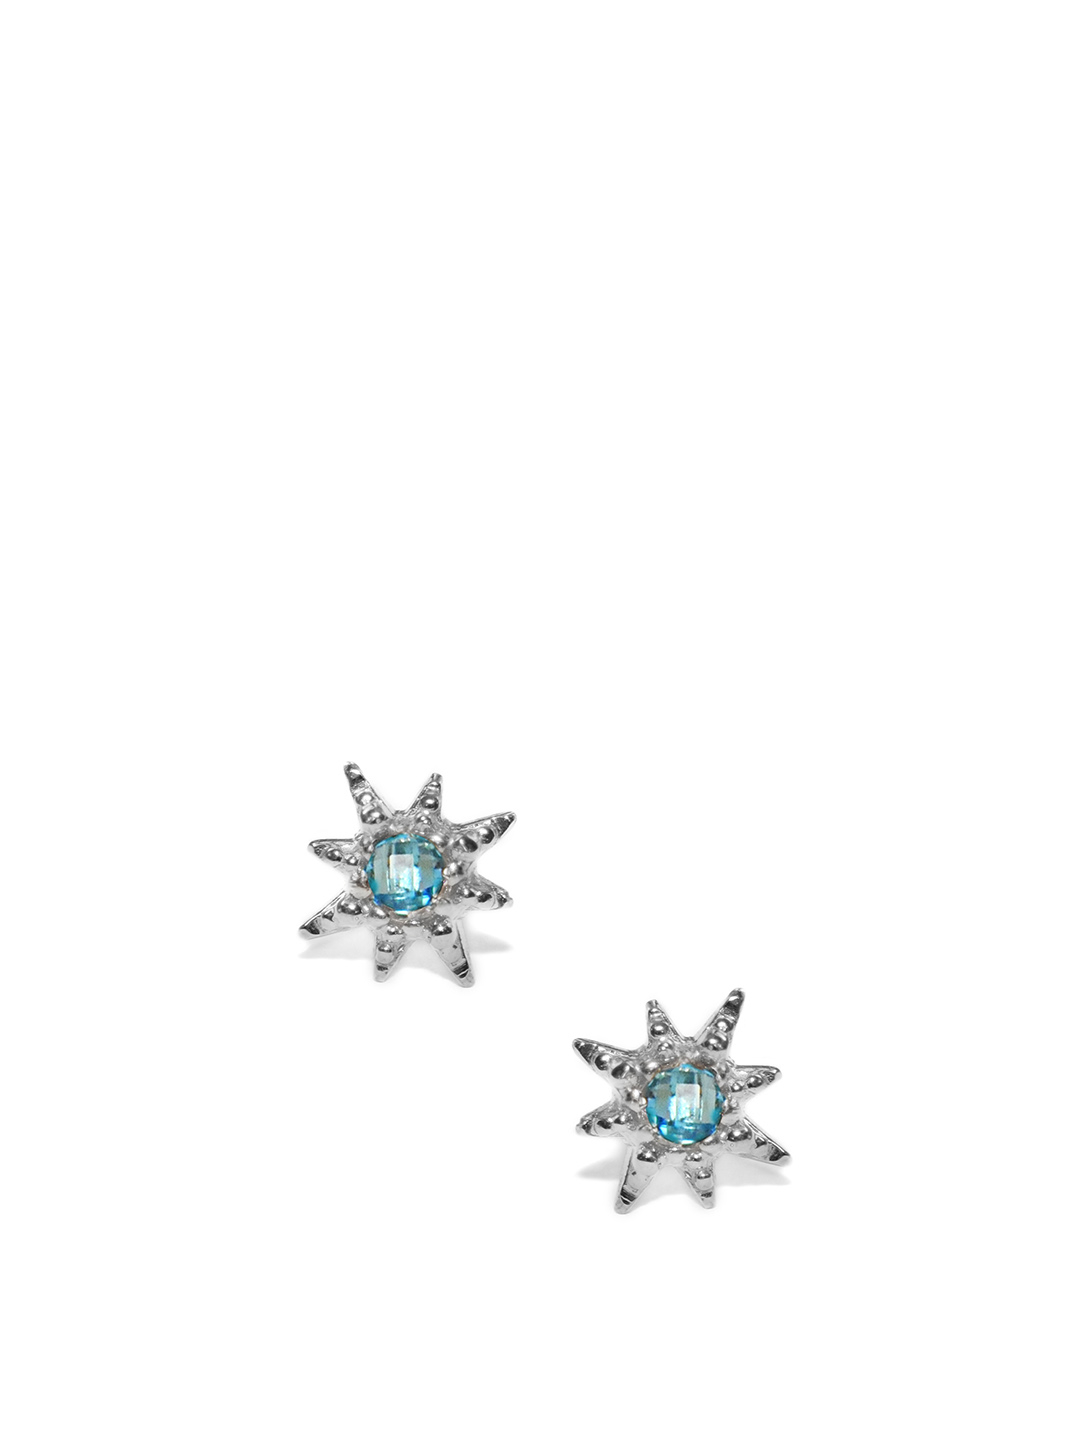 ANZIE Micro Aztec Sterling Silver Starburst Stud Earrings With Swiss Blue Topaz Women's Silver